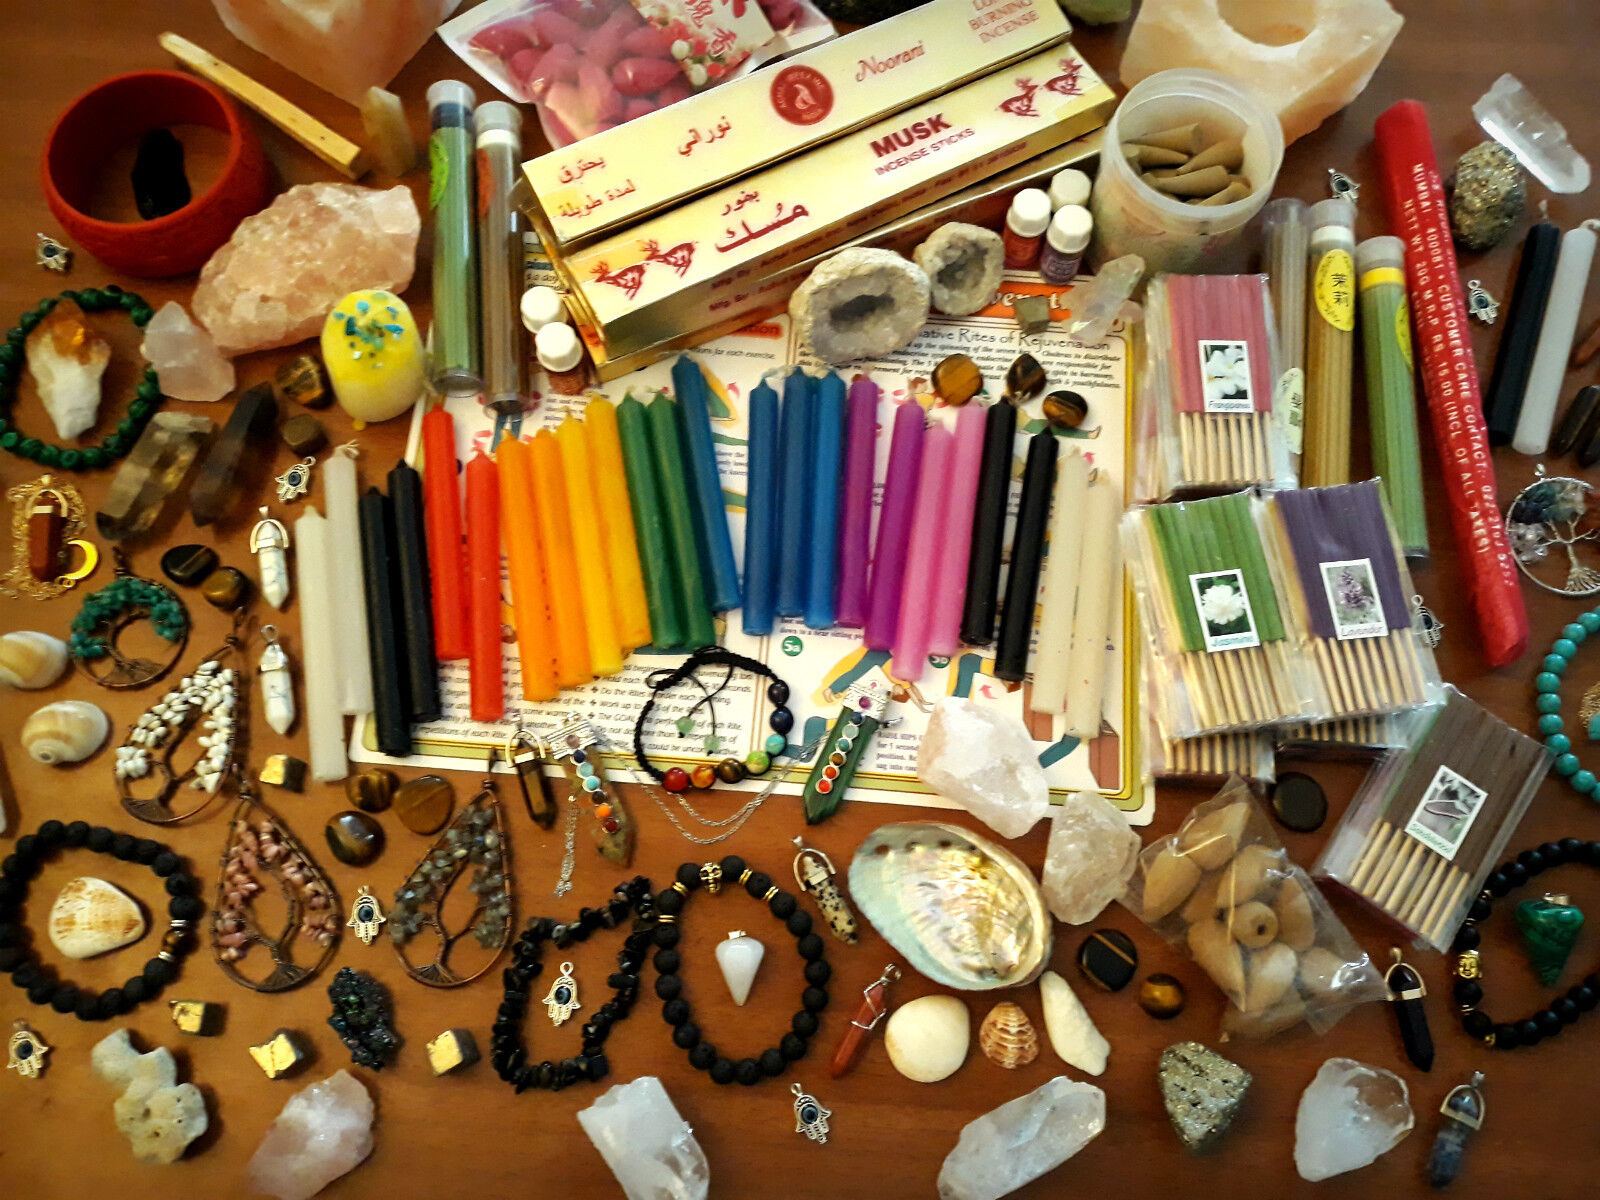 [LOT OF 7 - 9] Surprise Witchery Kit: Box Assorted Goods for Witchcraft | Wicca